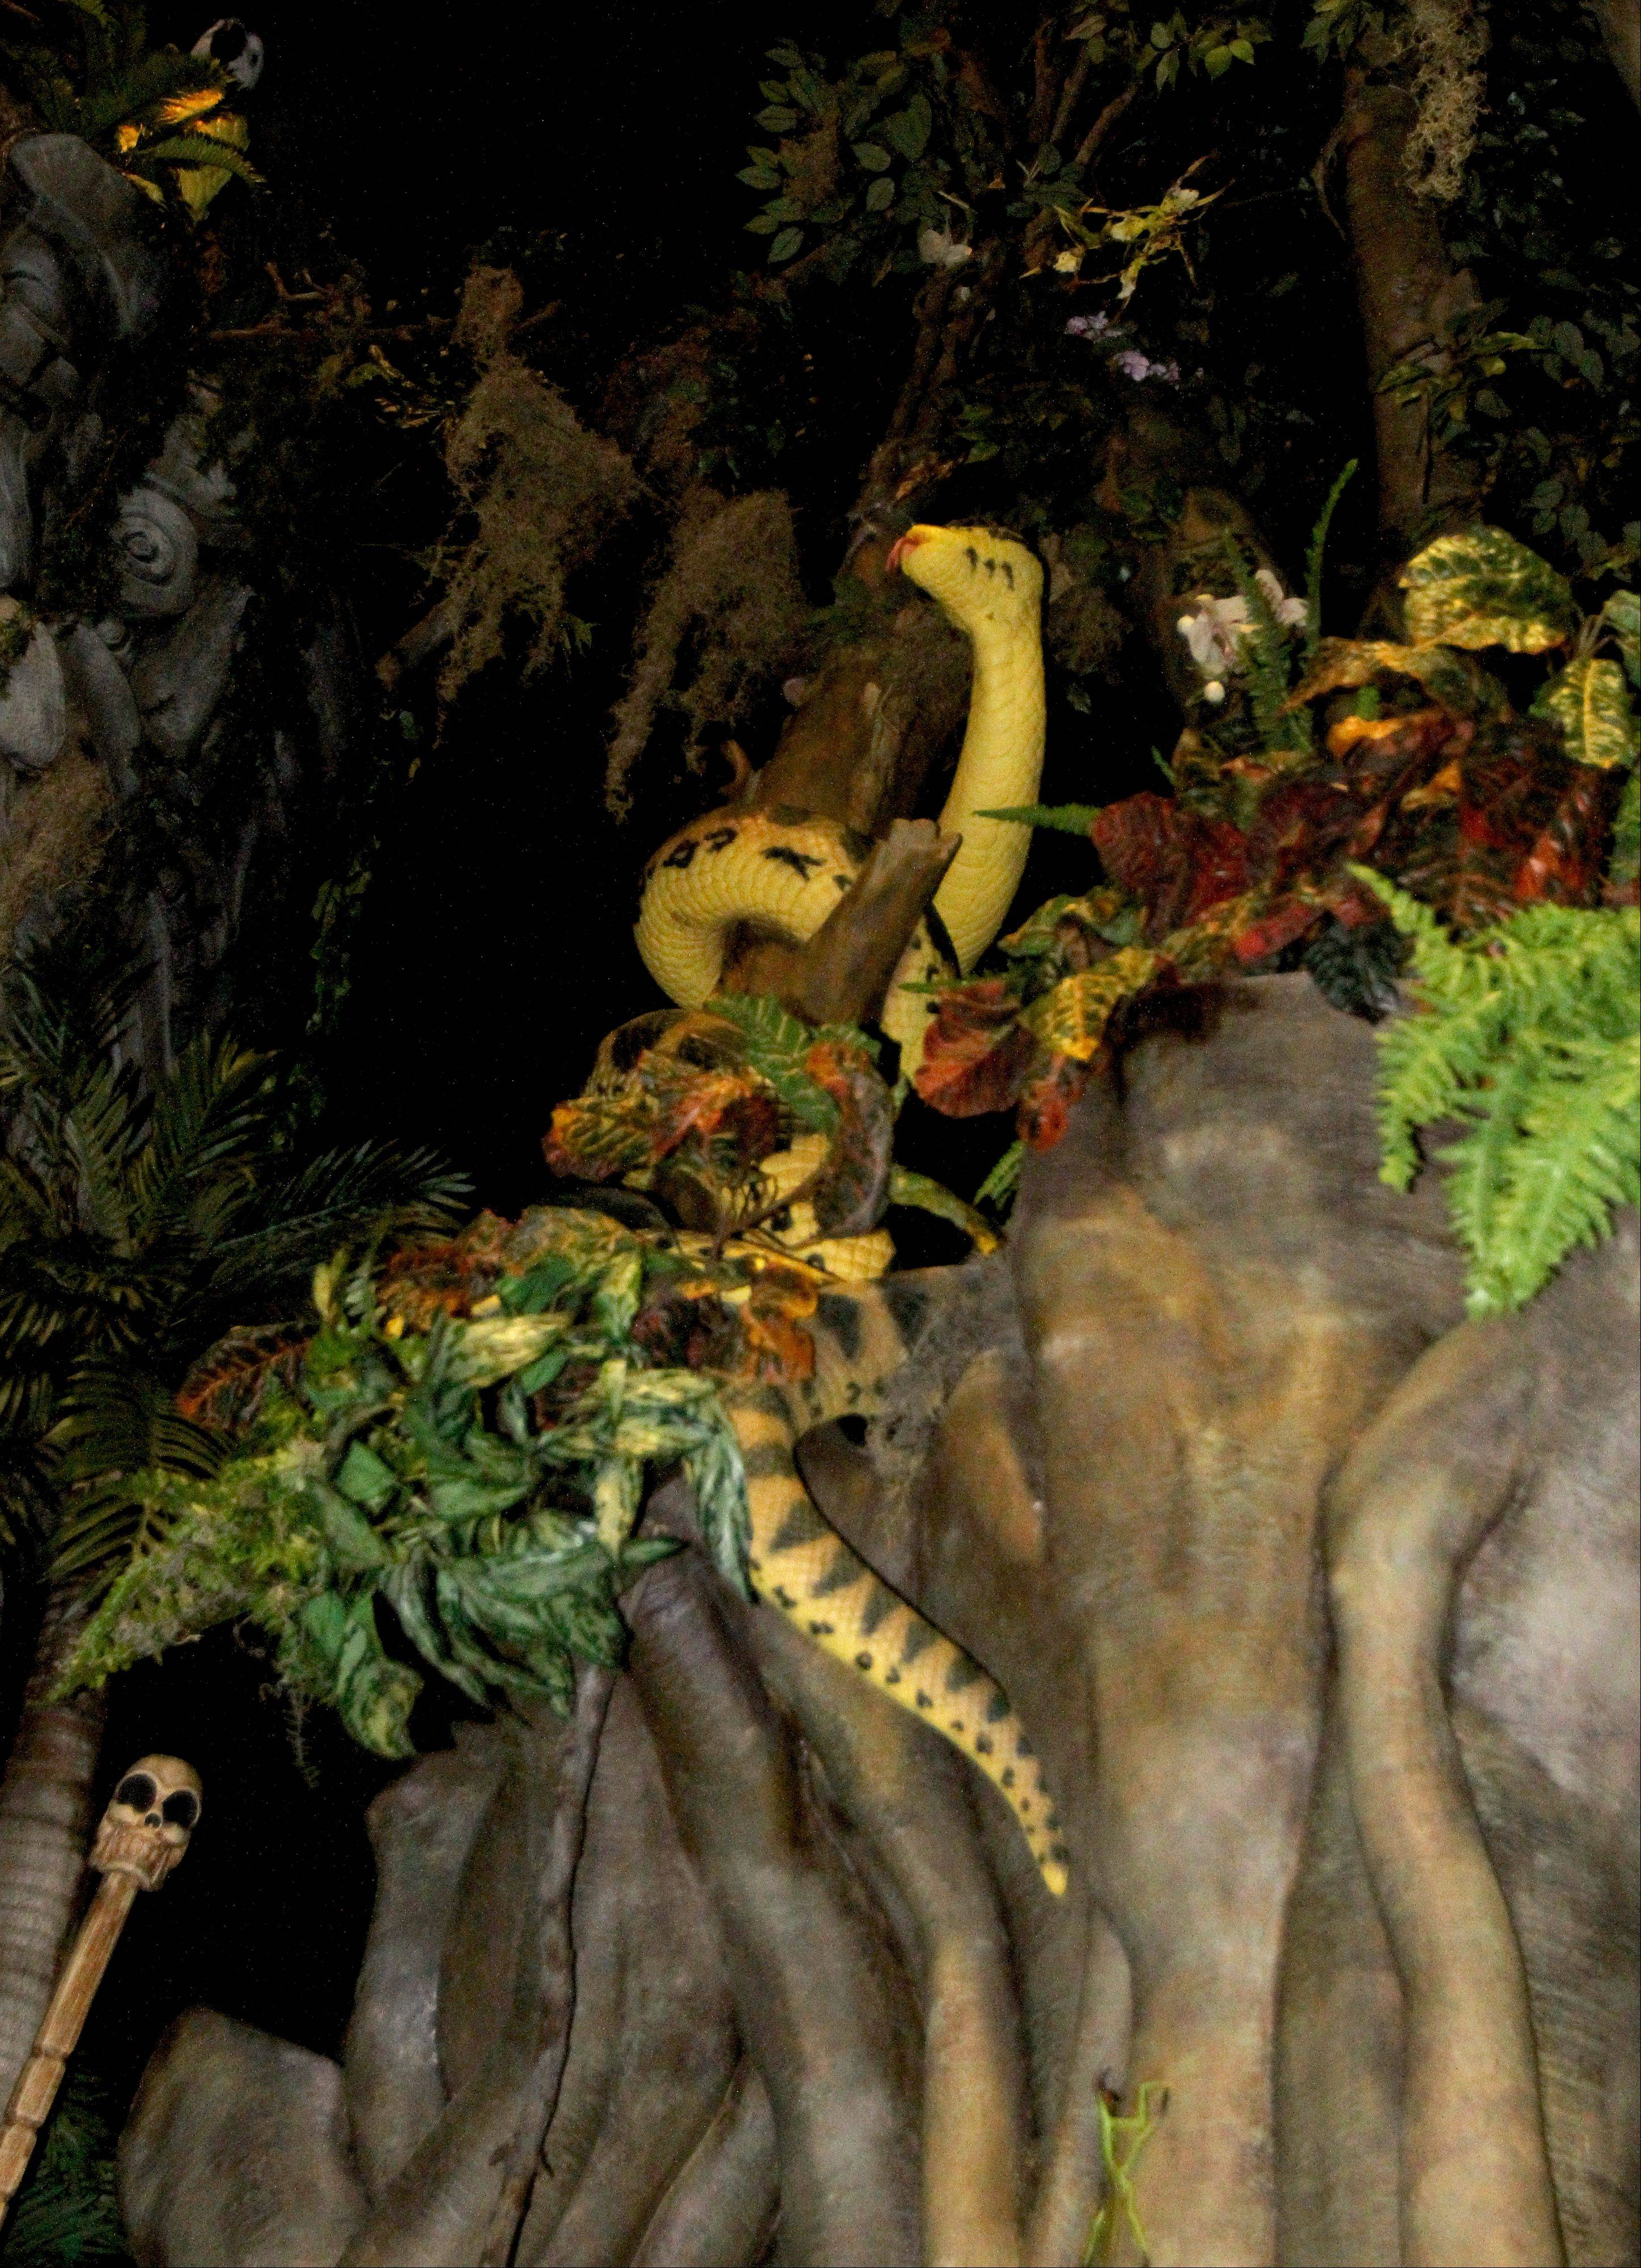 A snake crawls up a tree in the Mayan themed theater at the Hollywood Palms Cinema in Naperville.